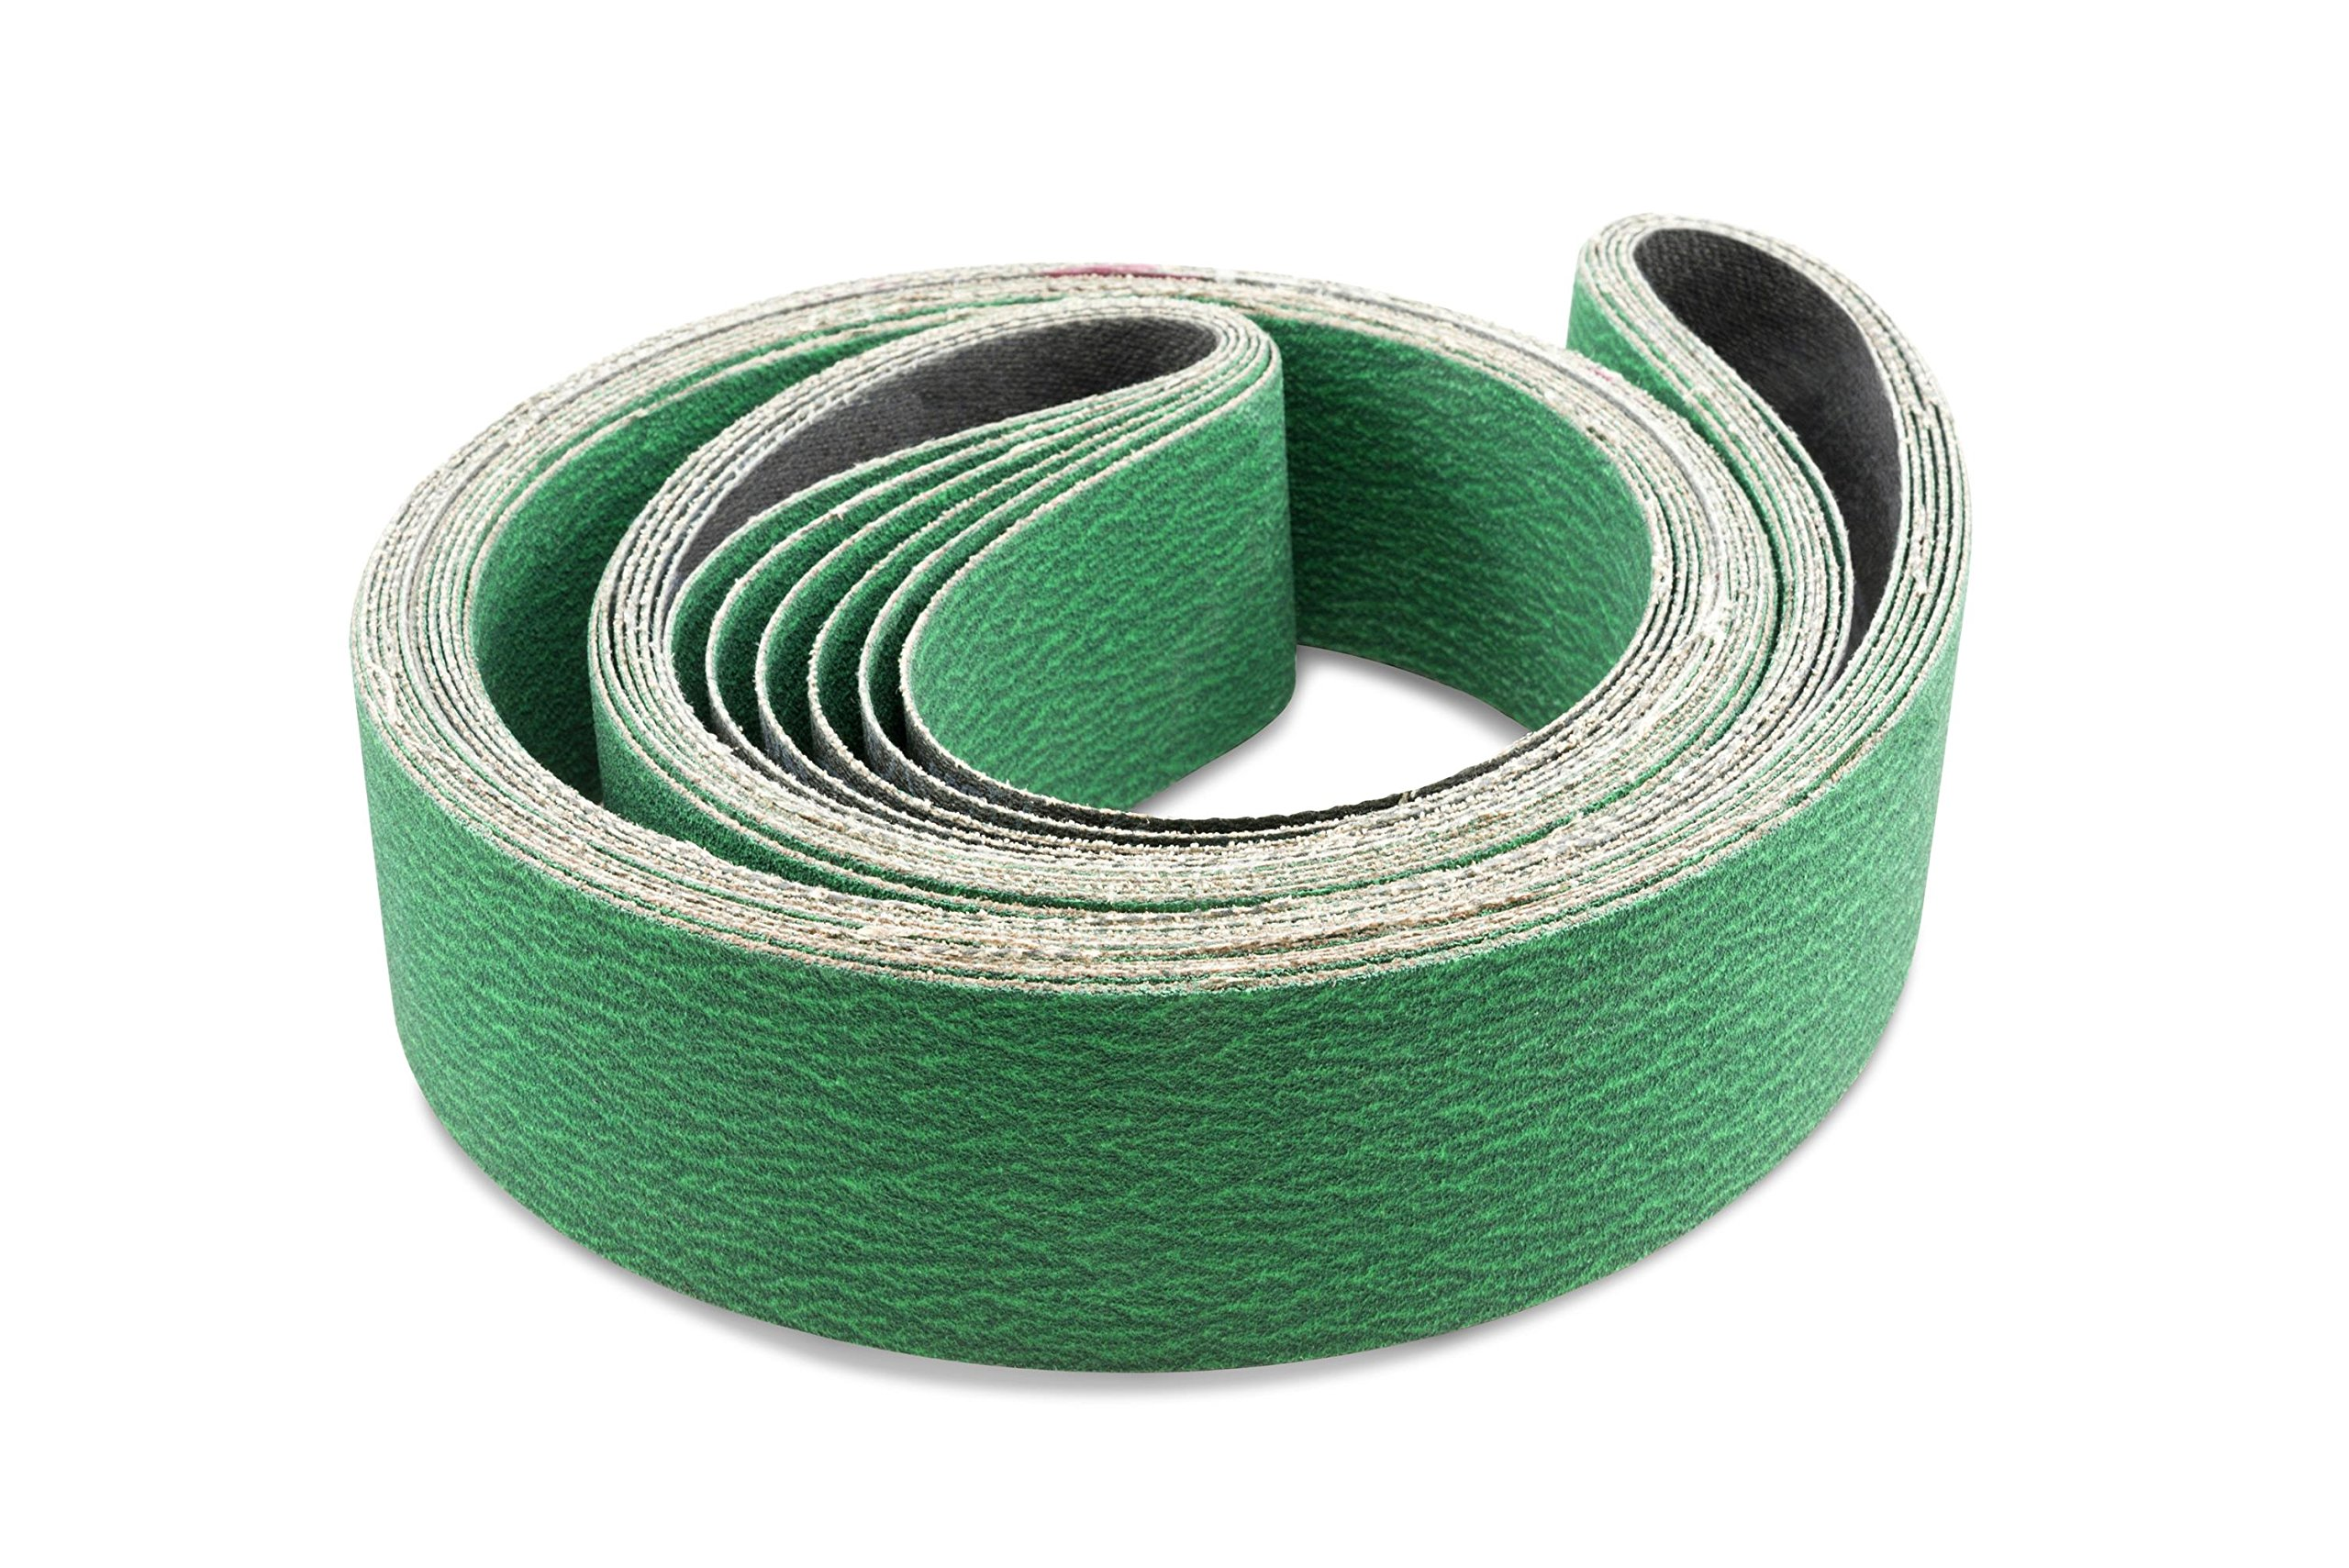 2 X 72 Inch 24 Grit Metal Grinding Zirconia Sanding Belts, 6 Pack by Red Label Abrasives